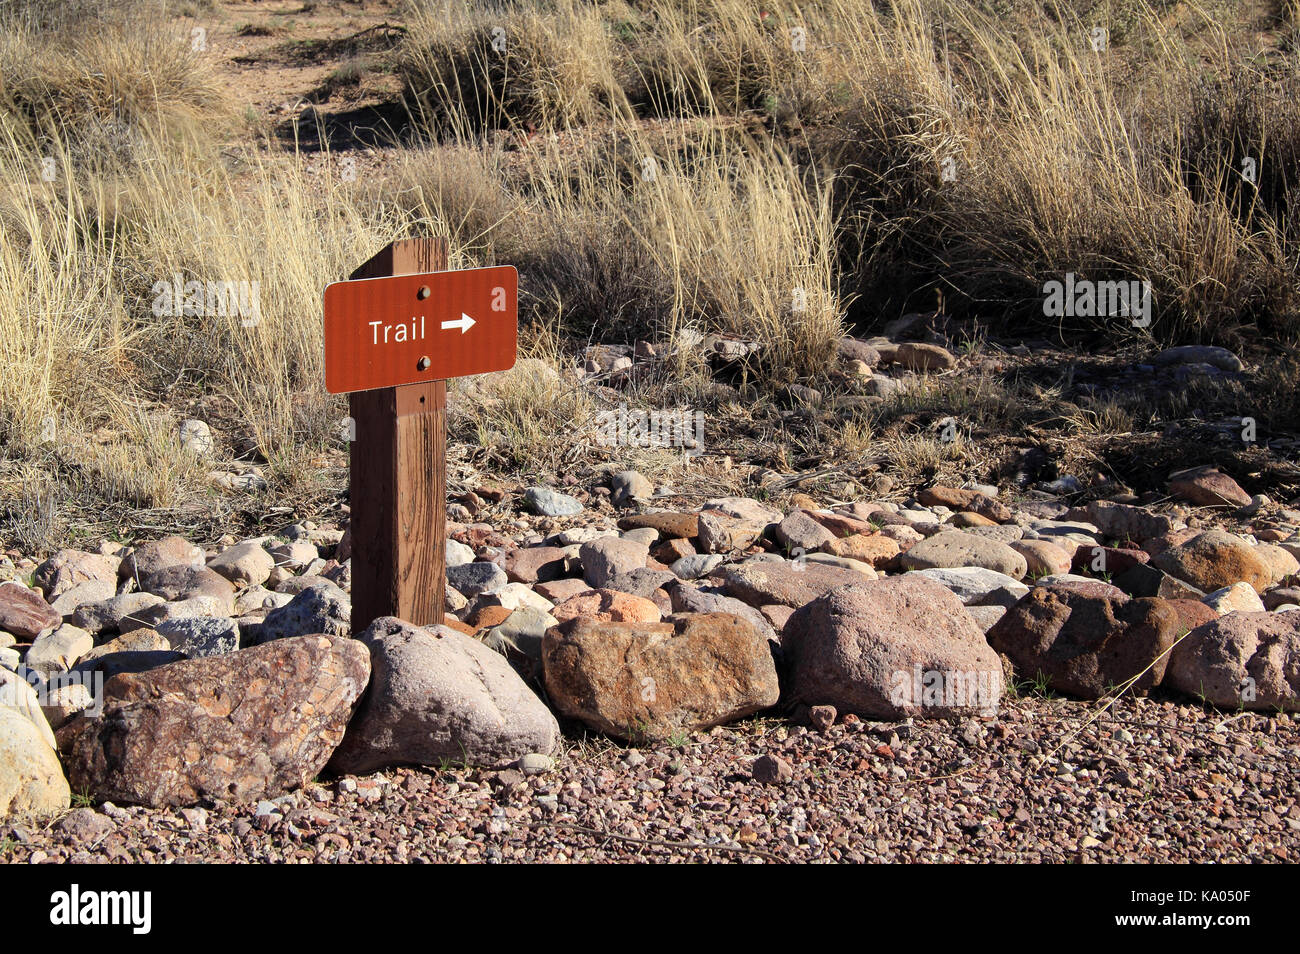 Fort Craig Stock Photos & Fort Craig Stock Images - Alamy